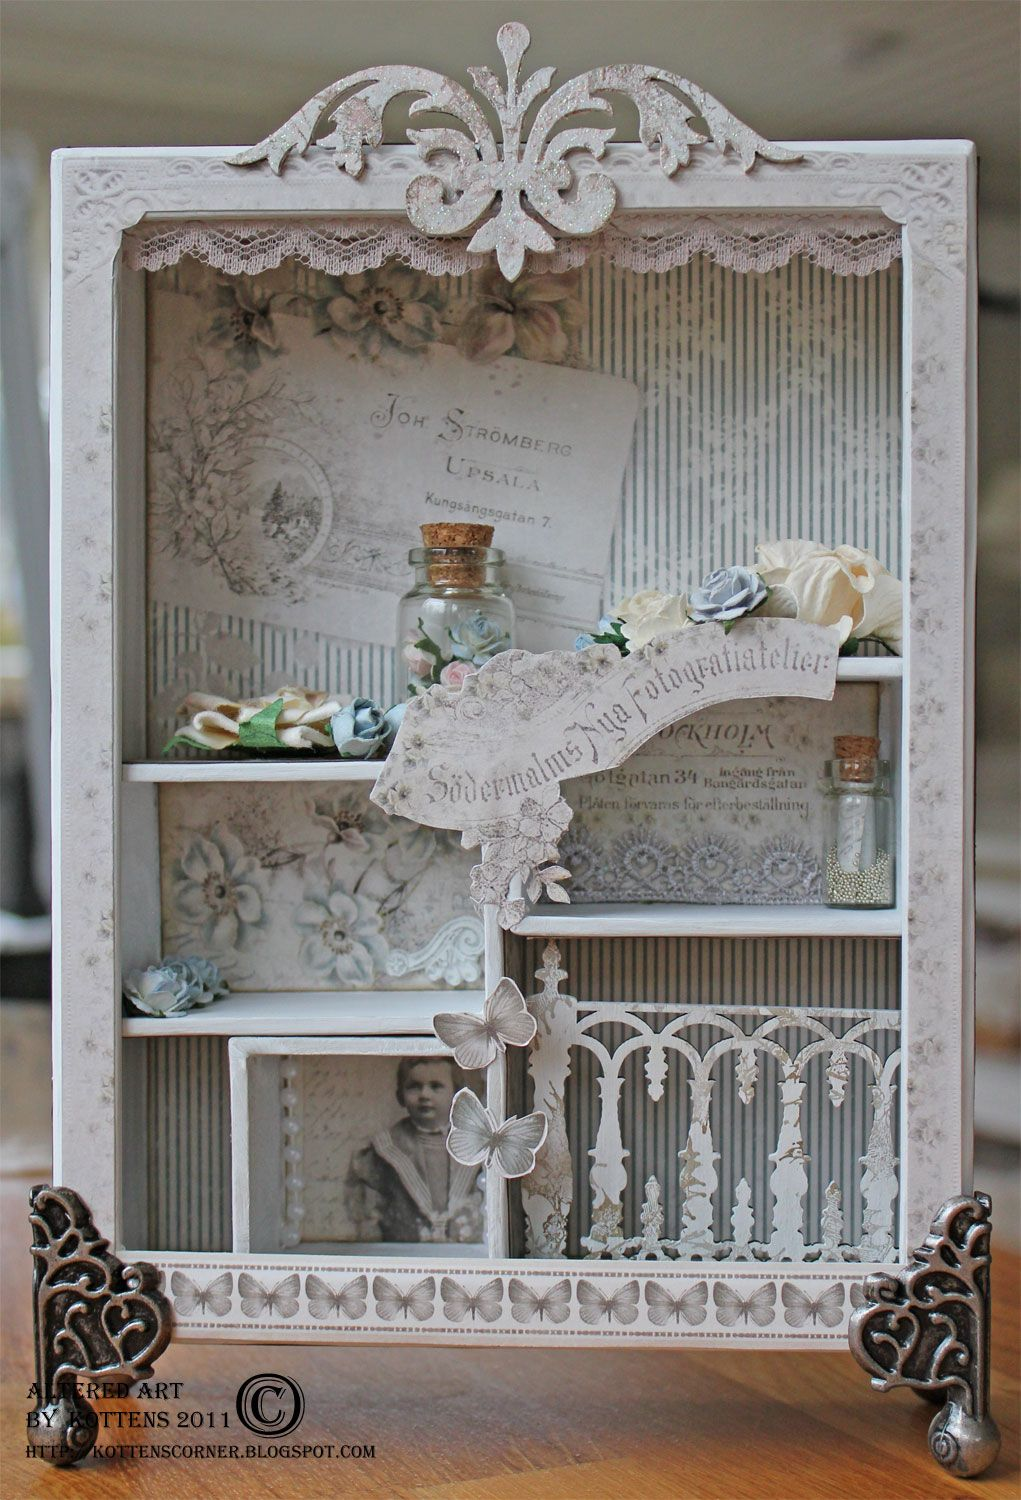 white configuration box vintage shabby chic pinterest setzkasten kisten und wohnaccessoires. Black Bedroom Furniture Sets. Home Design Ideas